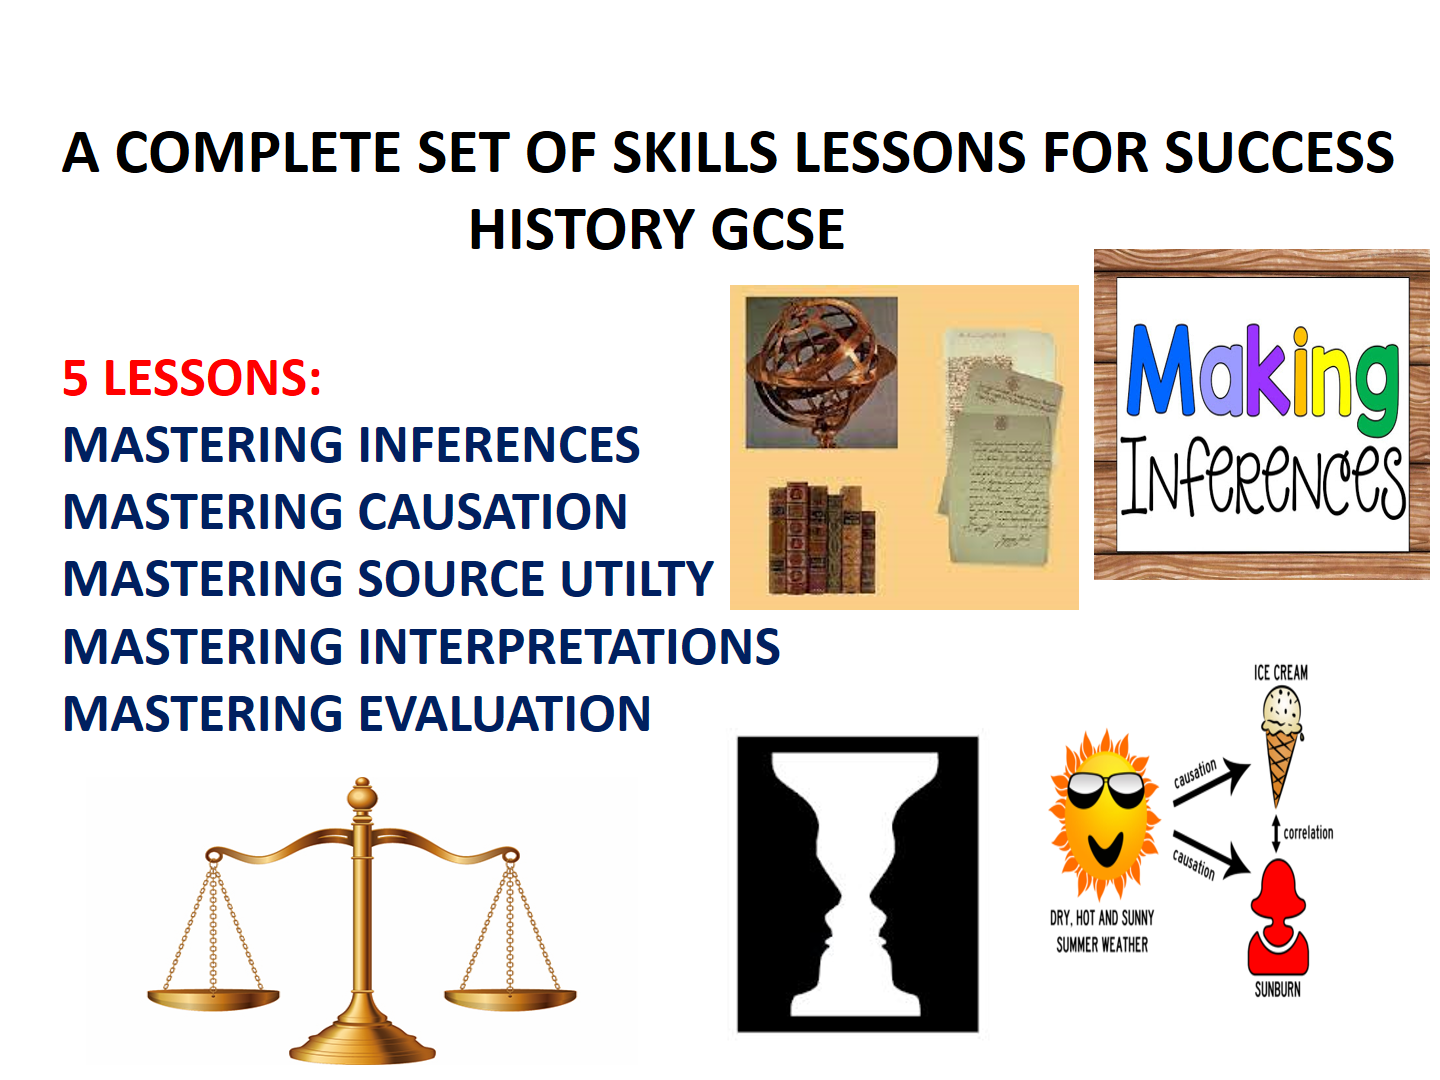 MASTERING THE SKILLS NEEDED FOR GCSE HISTORY